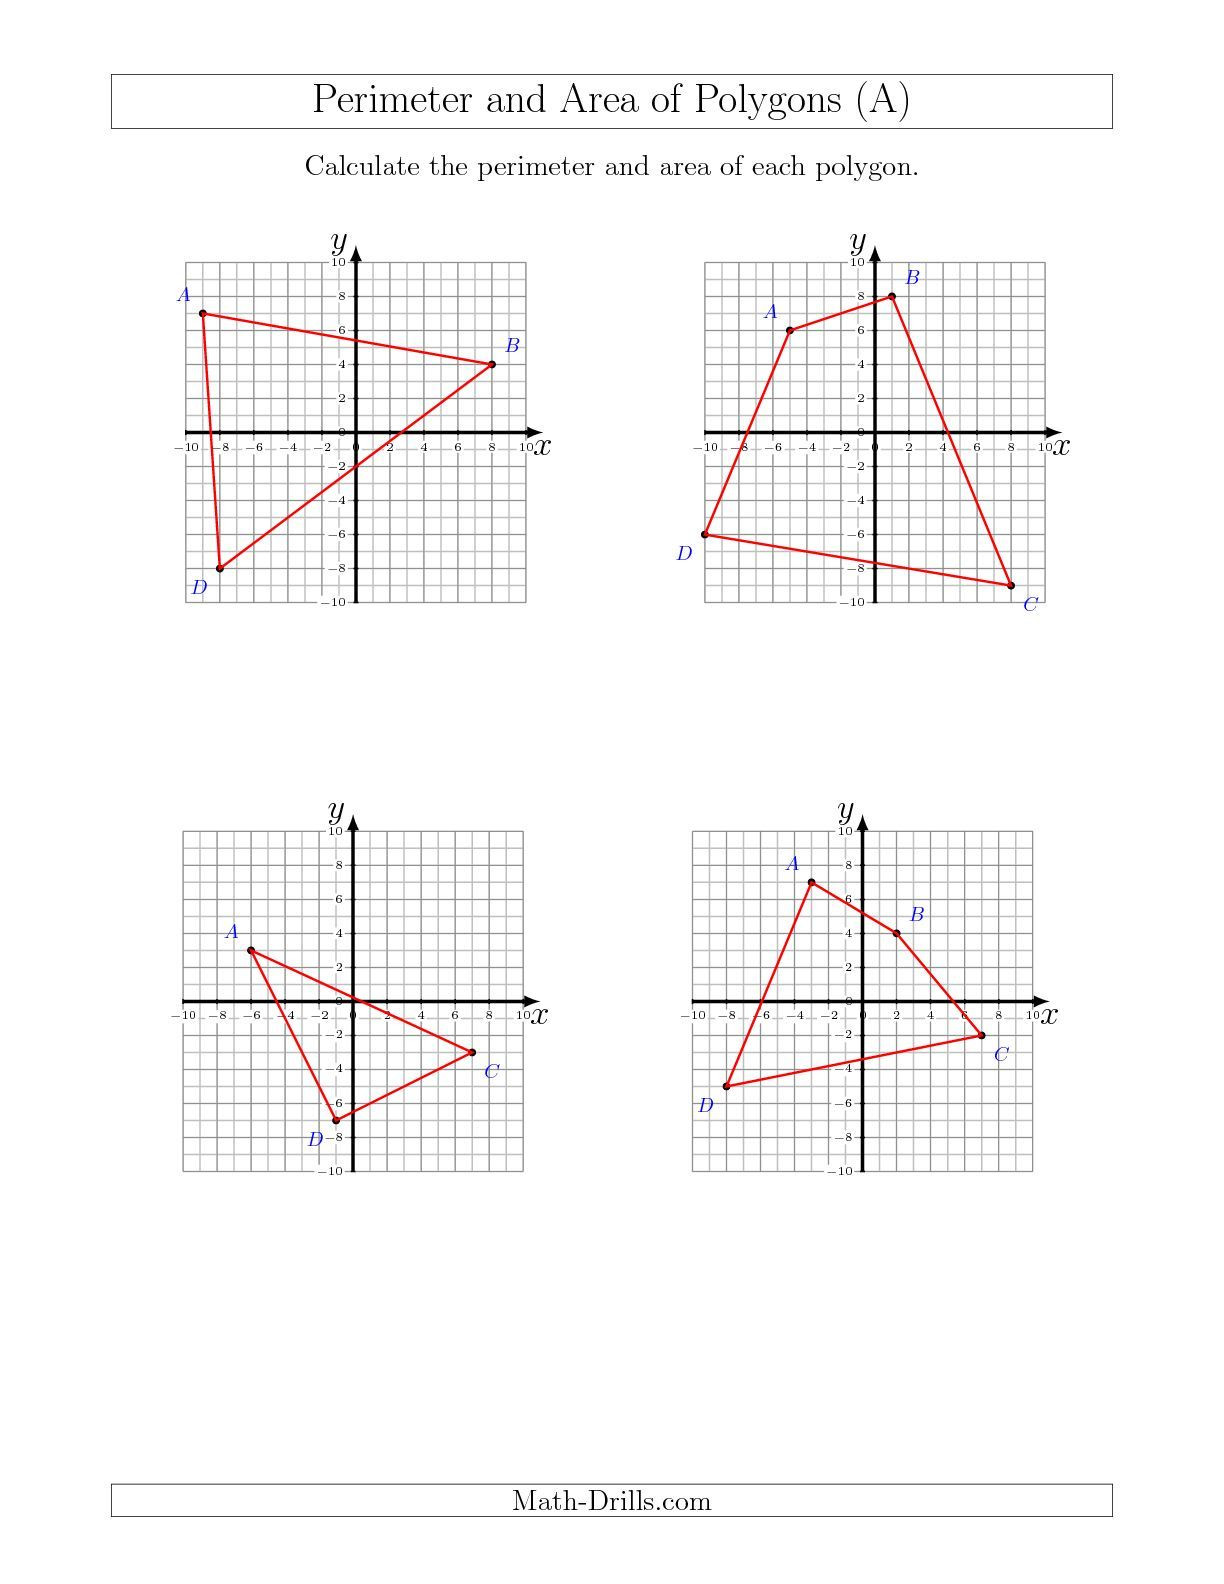 Coordinate Plane Worksheets Middle School Perimeter and area Of Polygons On Coordinate Planes A